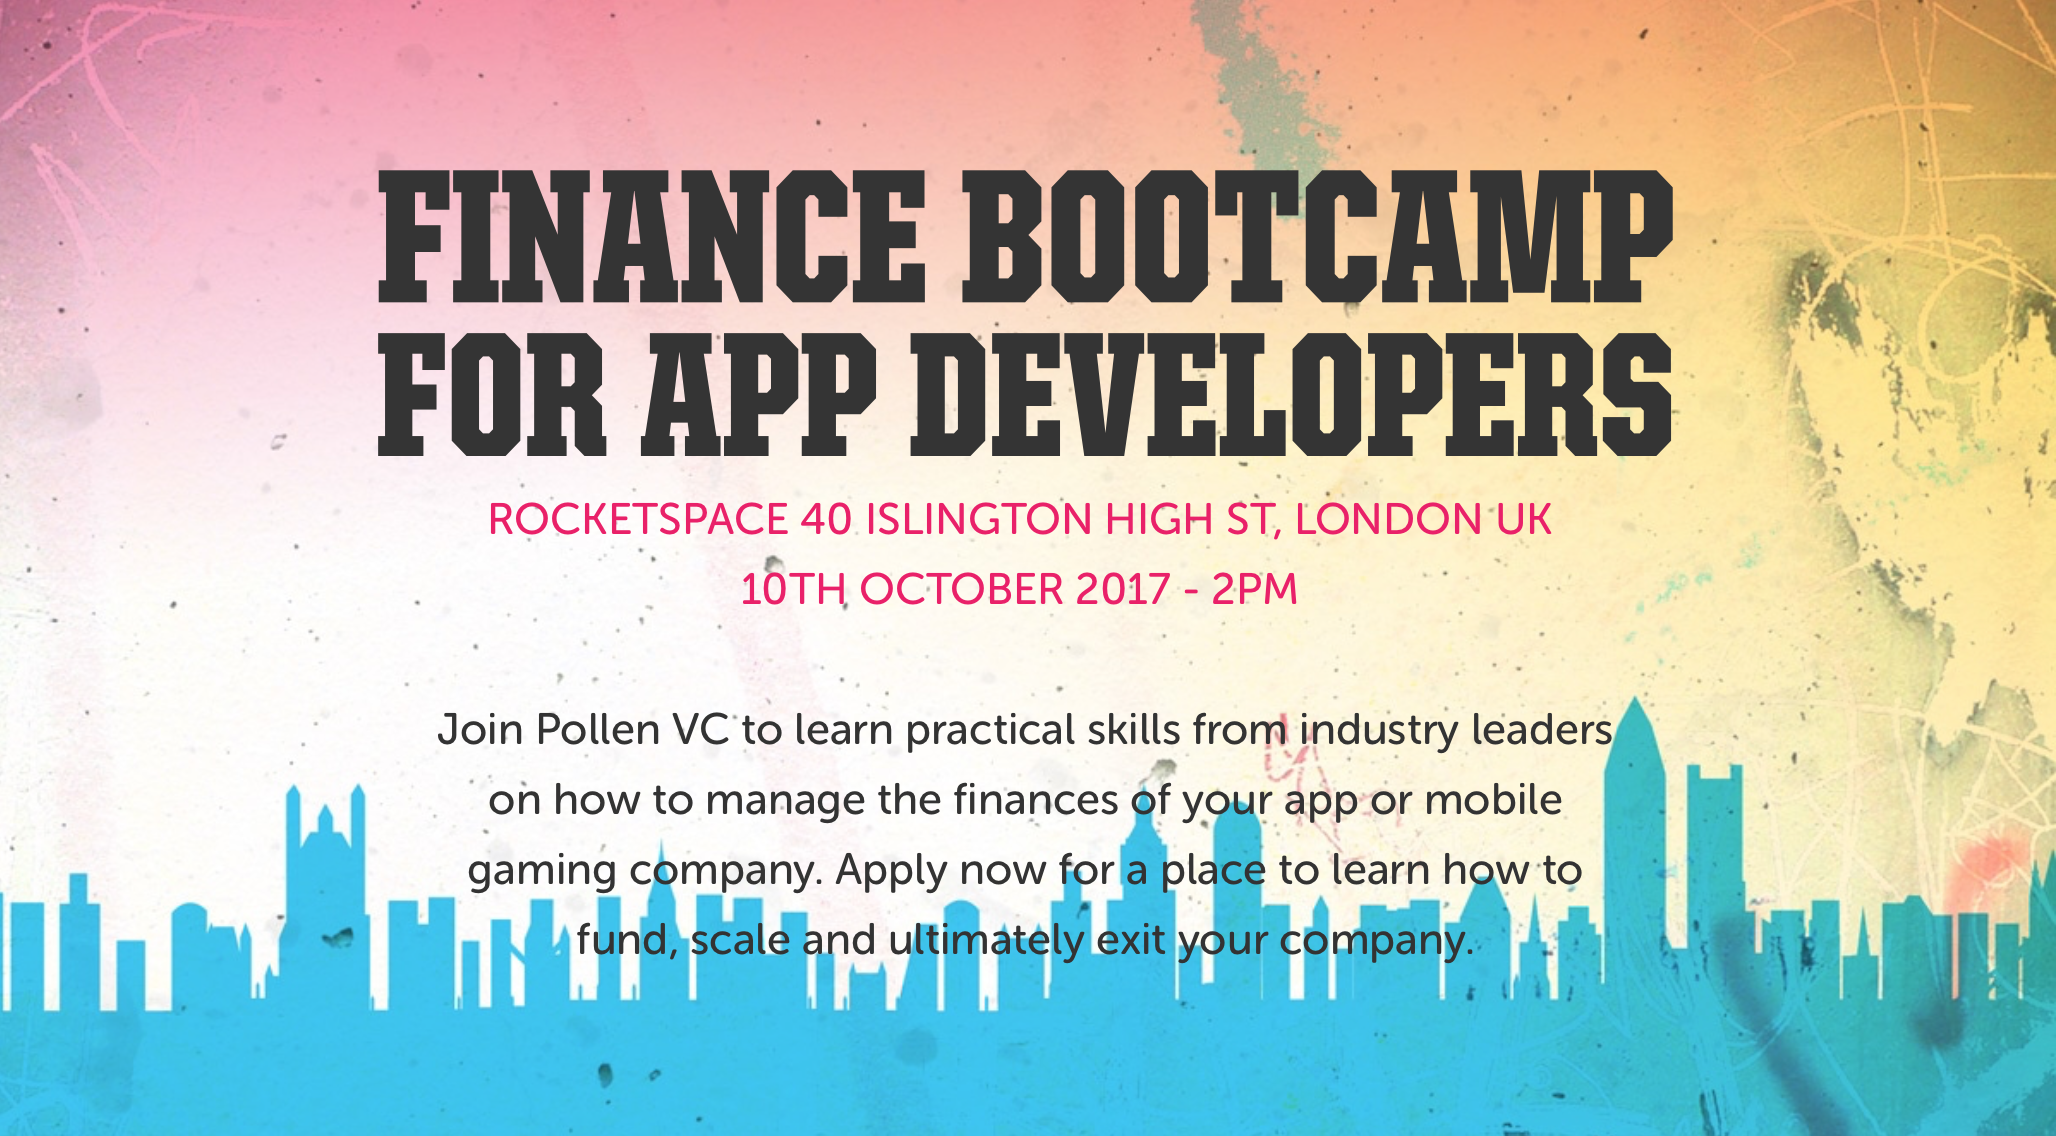 London Bootcamp Will Teach App Developers Practical Skills About Managing Mobile App Revenue